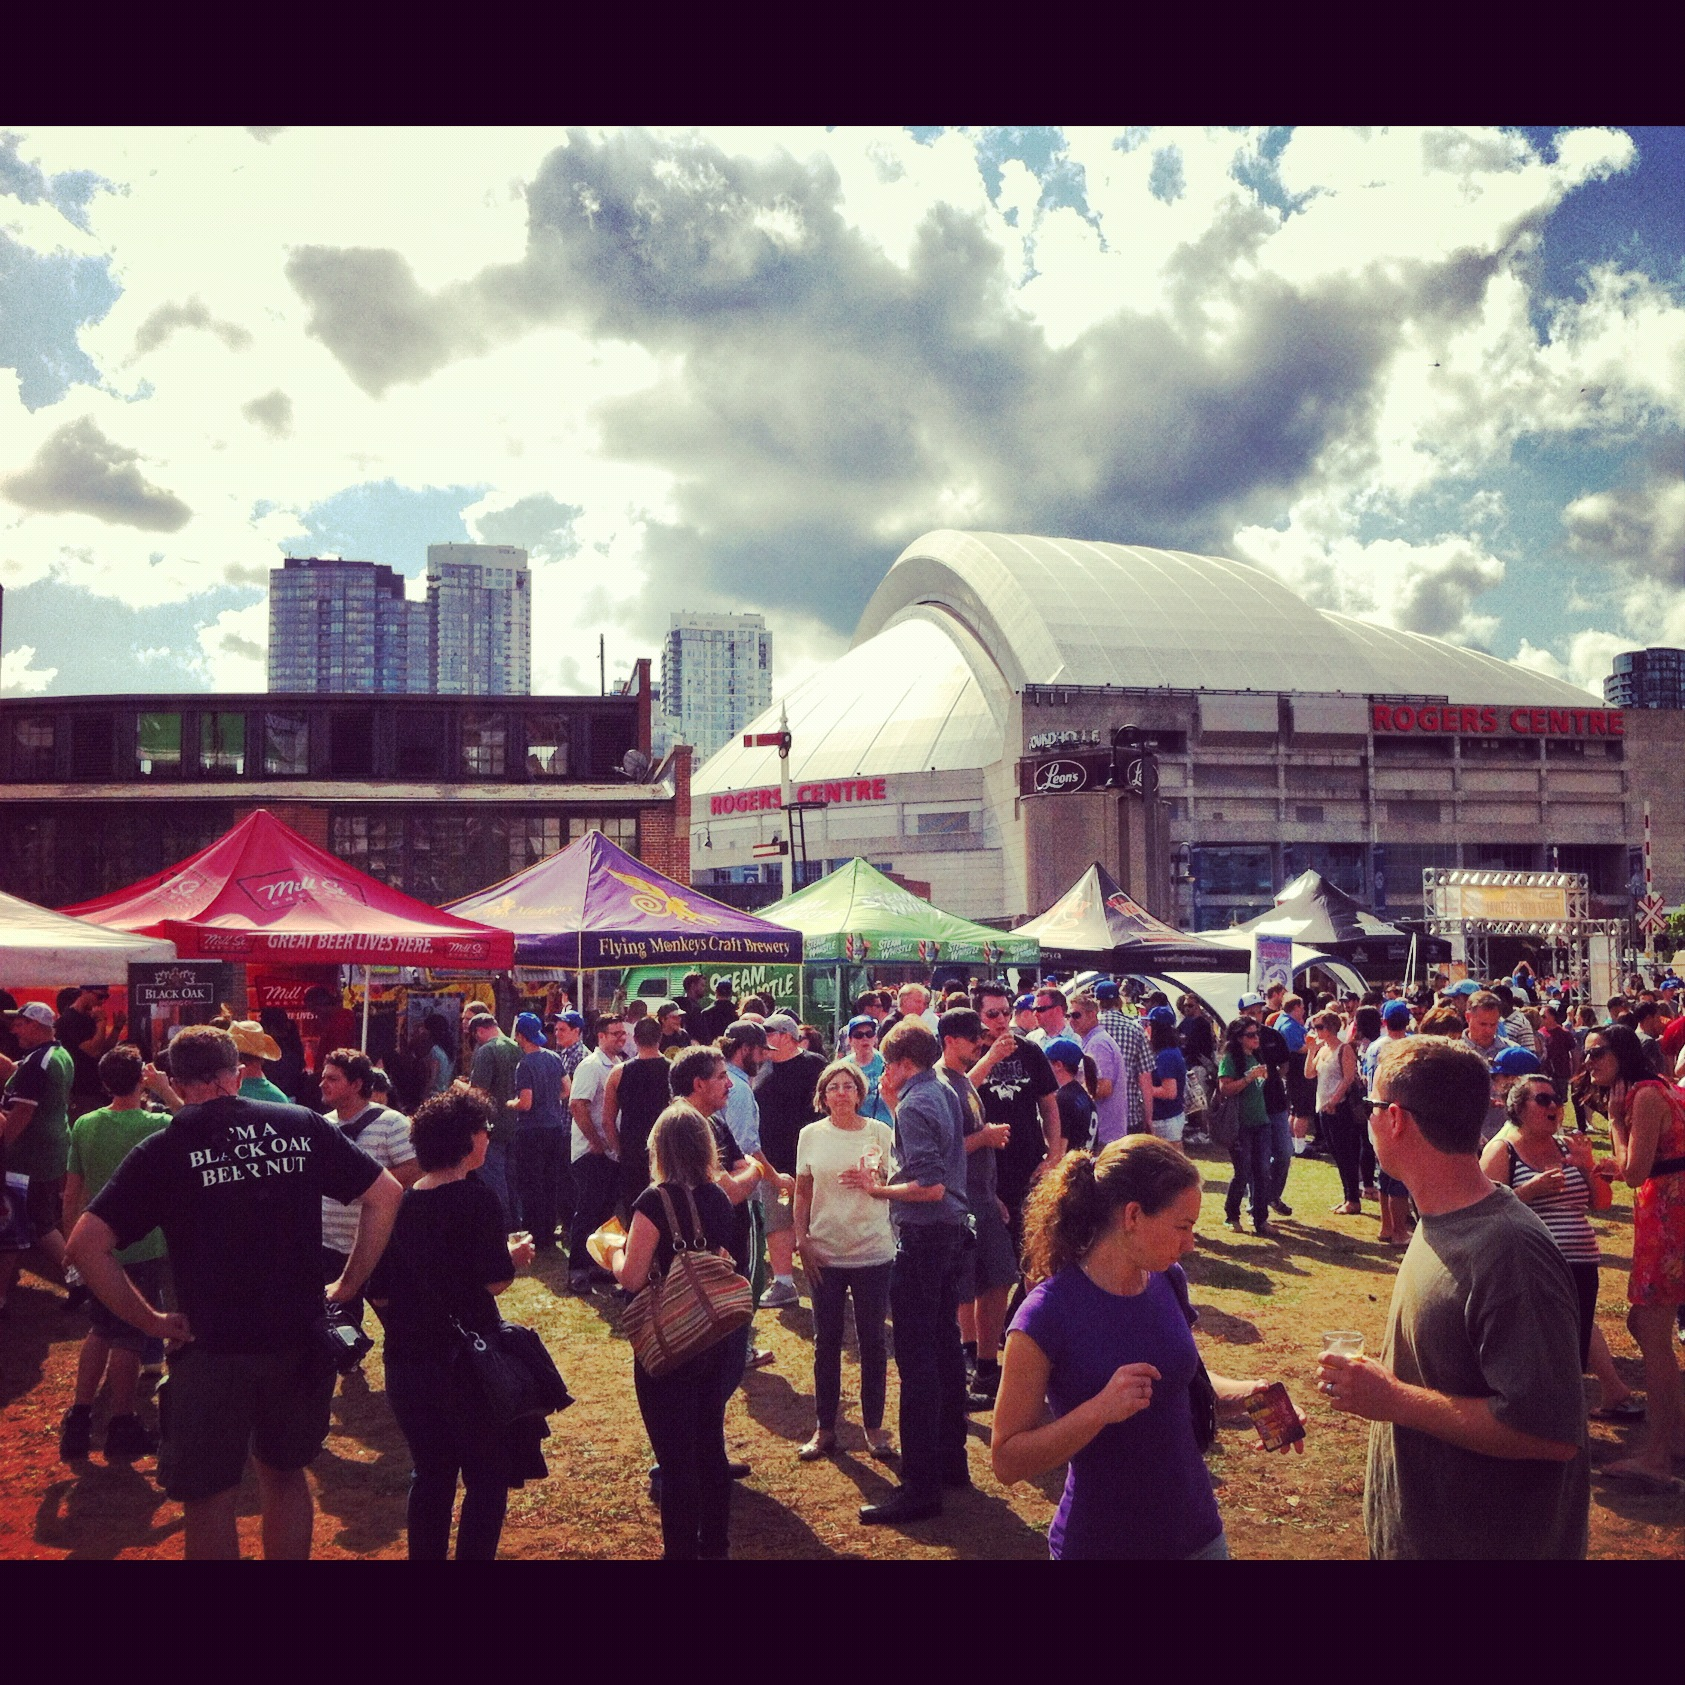 Roundhouse craft beer festival toronto for Craft beer festival toronto